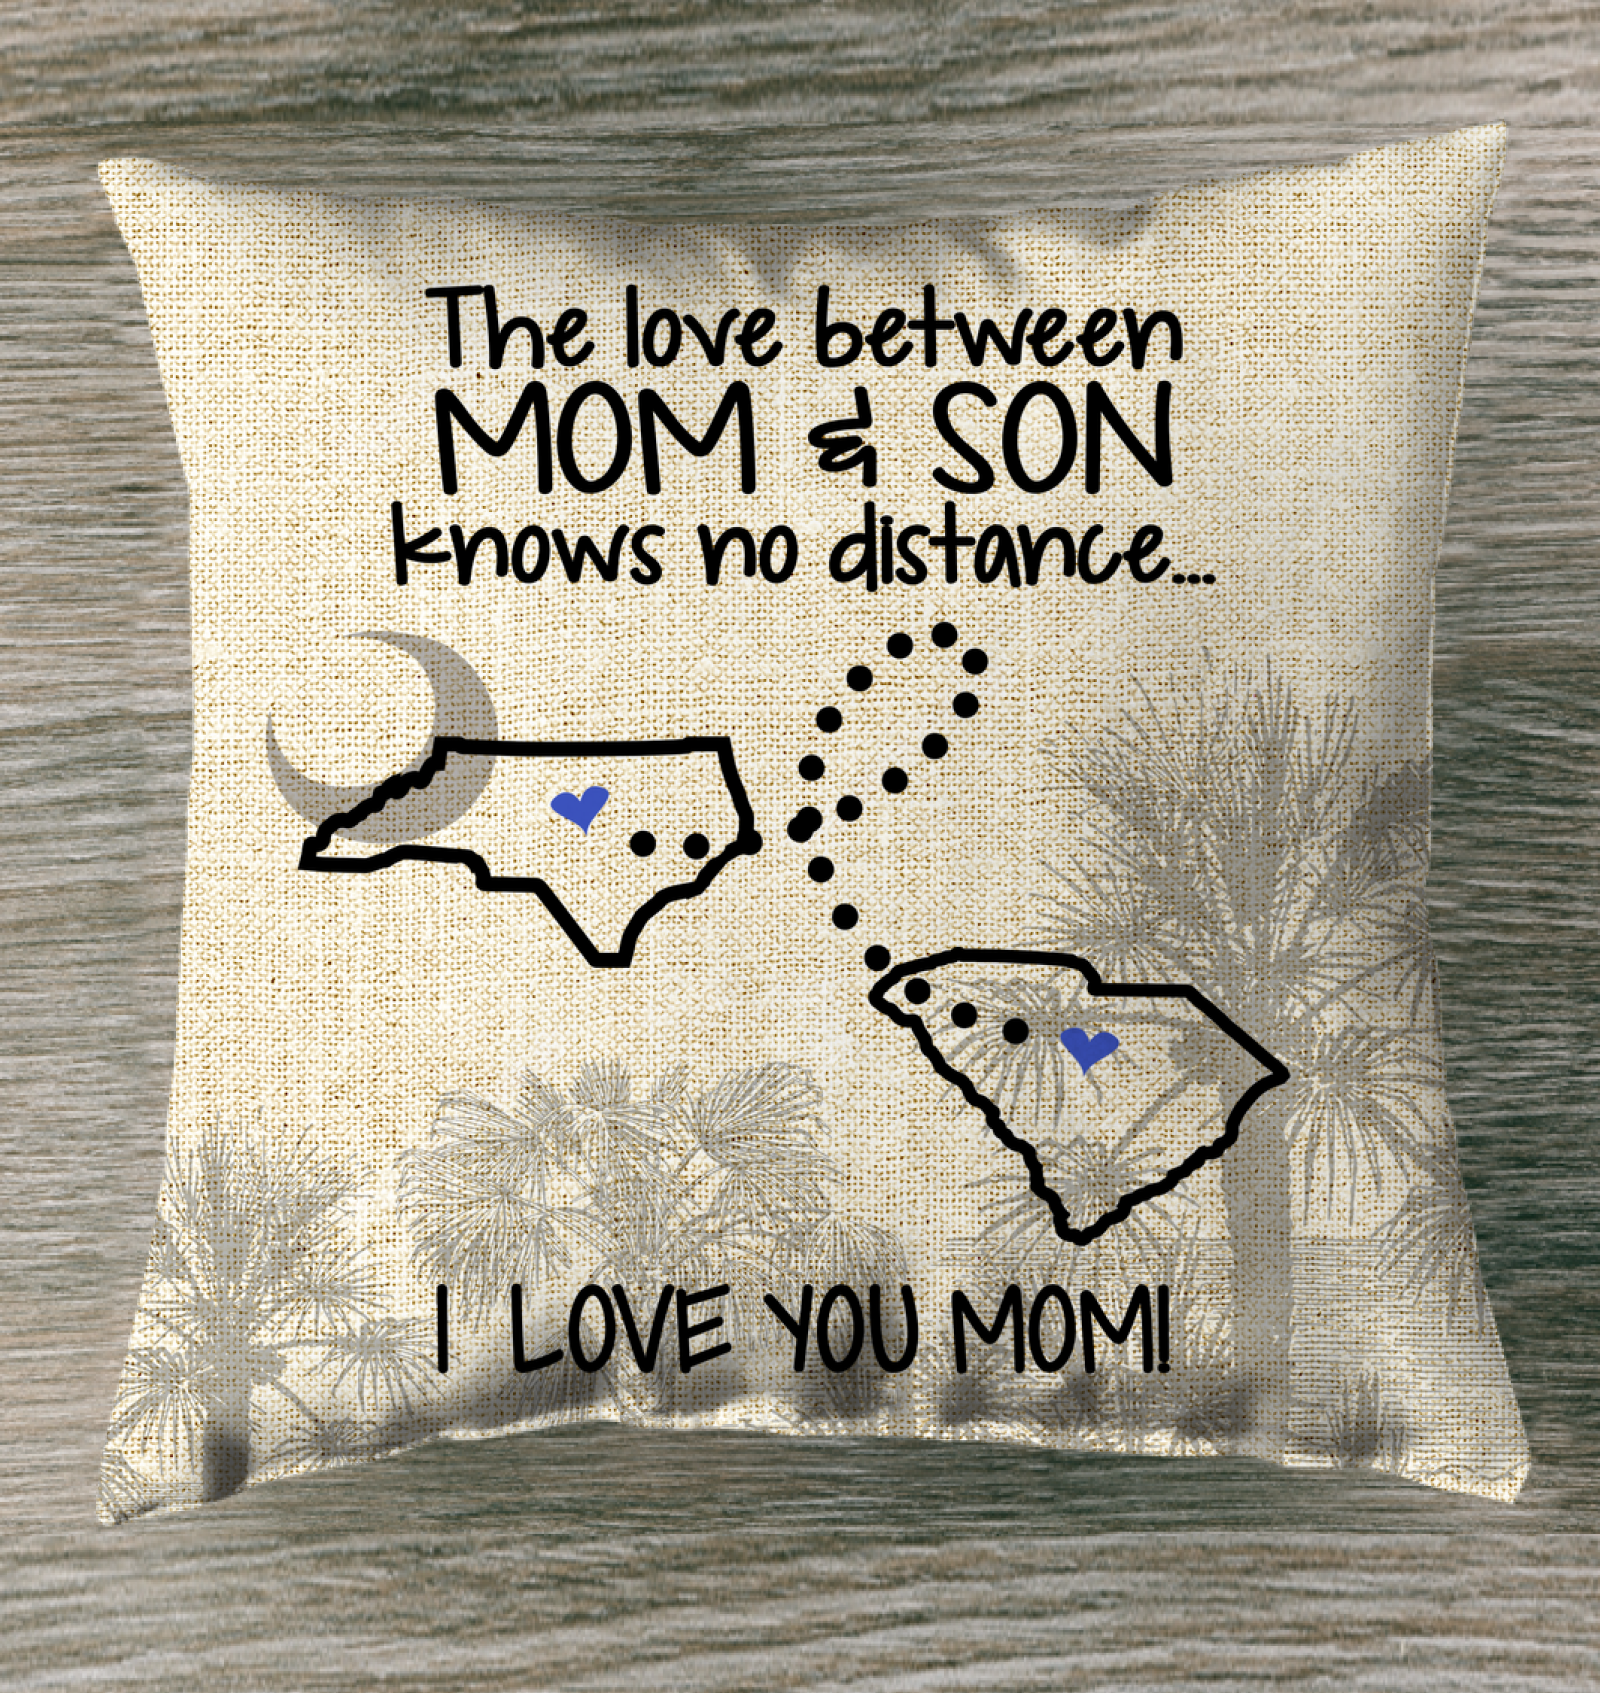 SOUTH CAROLINA NORTH CAROLINA THE LOVE BETWEEN MOM AND SON